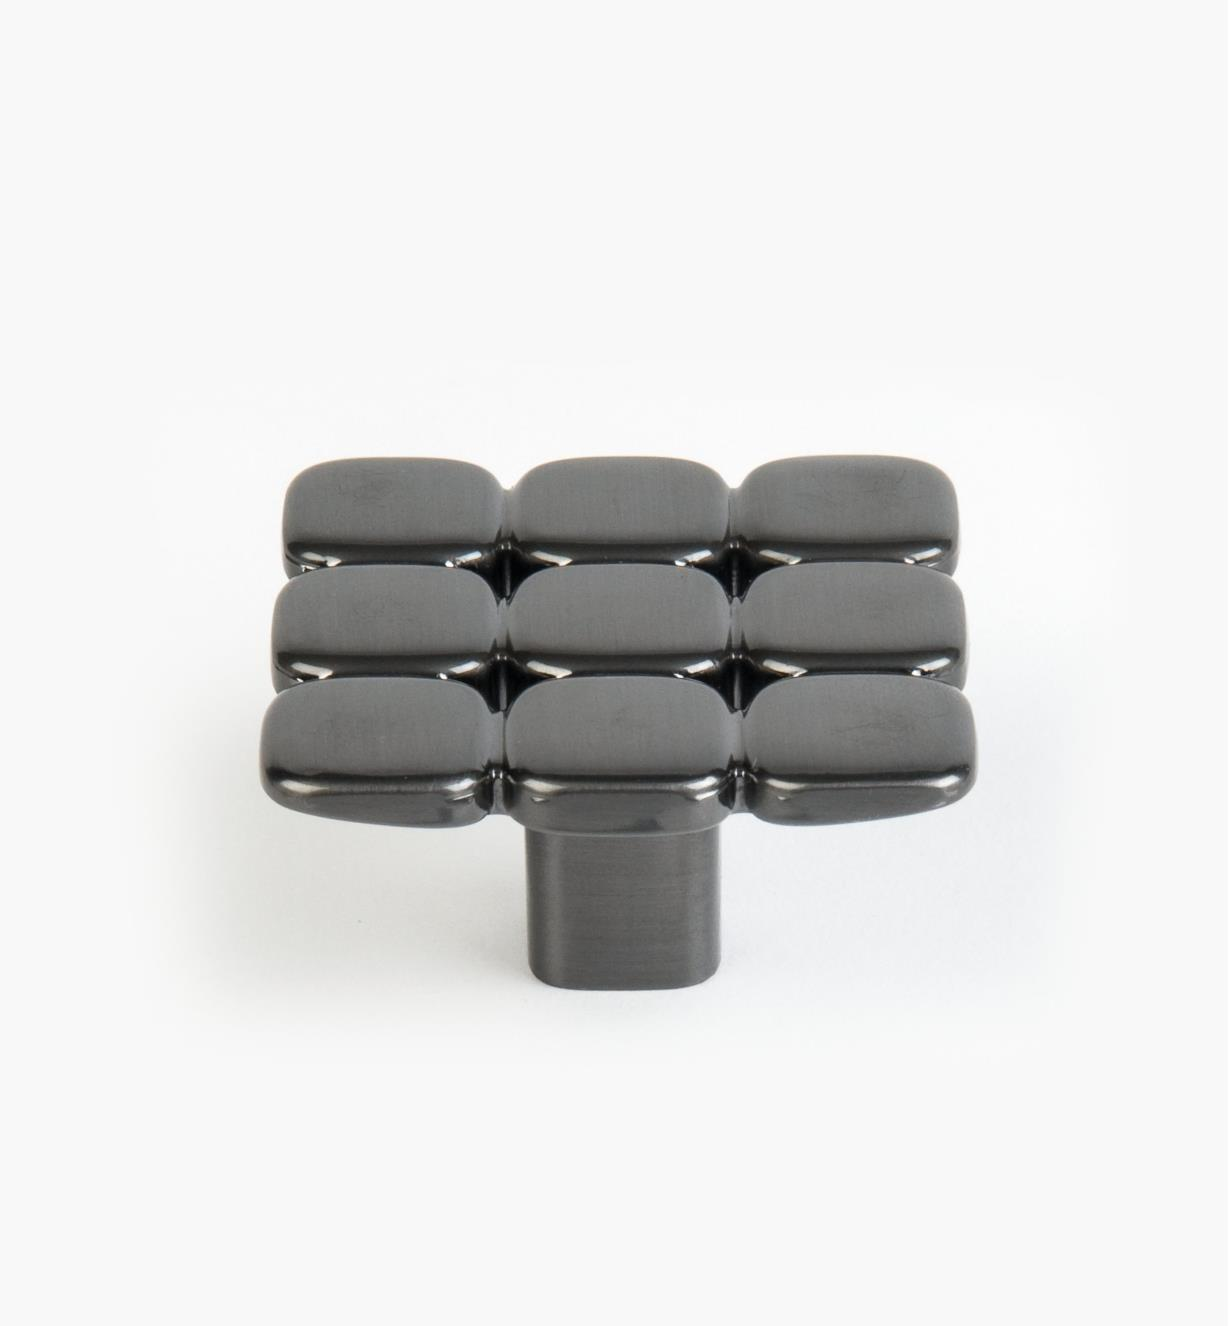 01G1581 - 48mm x 27mm Black Nickel Quadro Knob